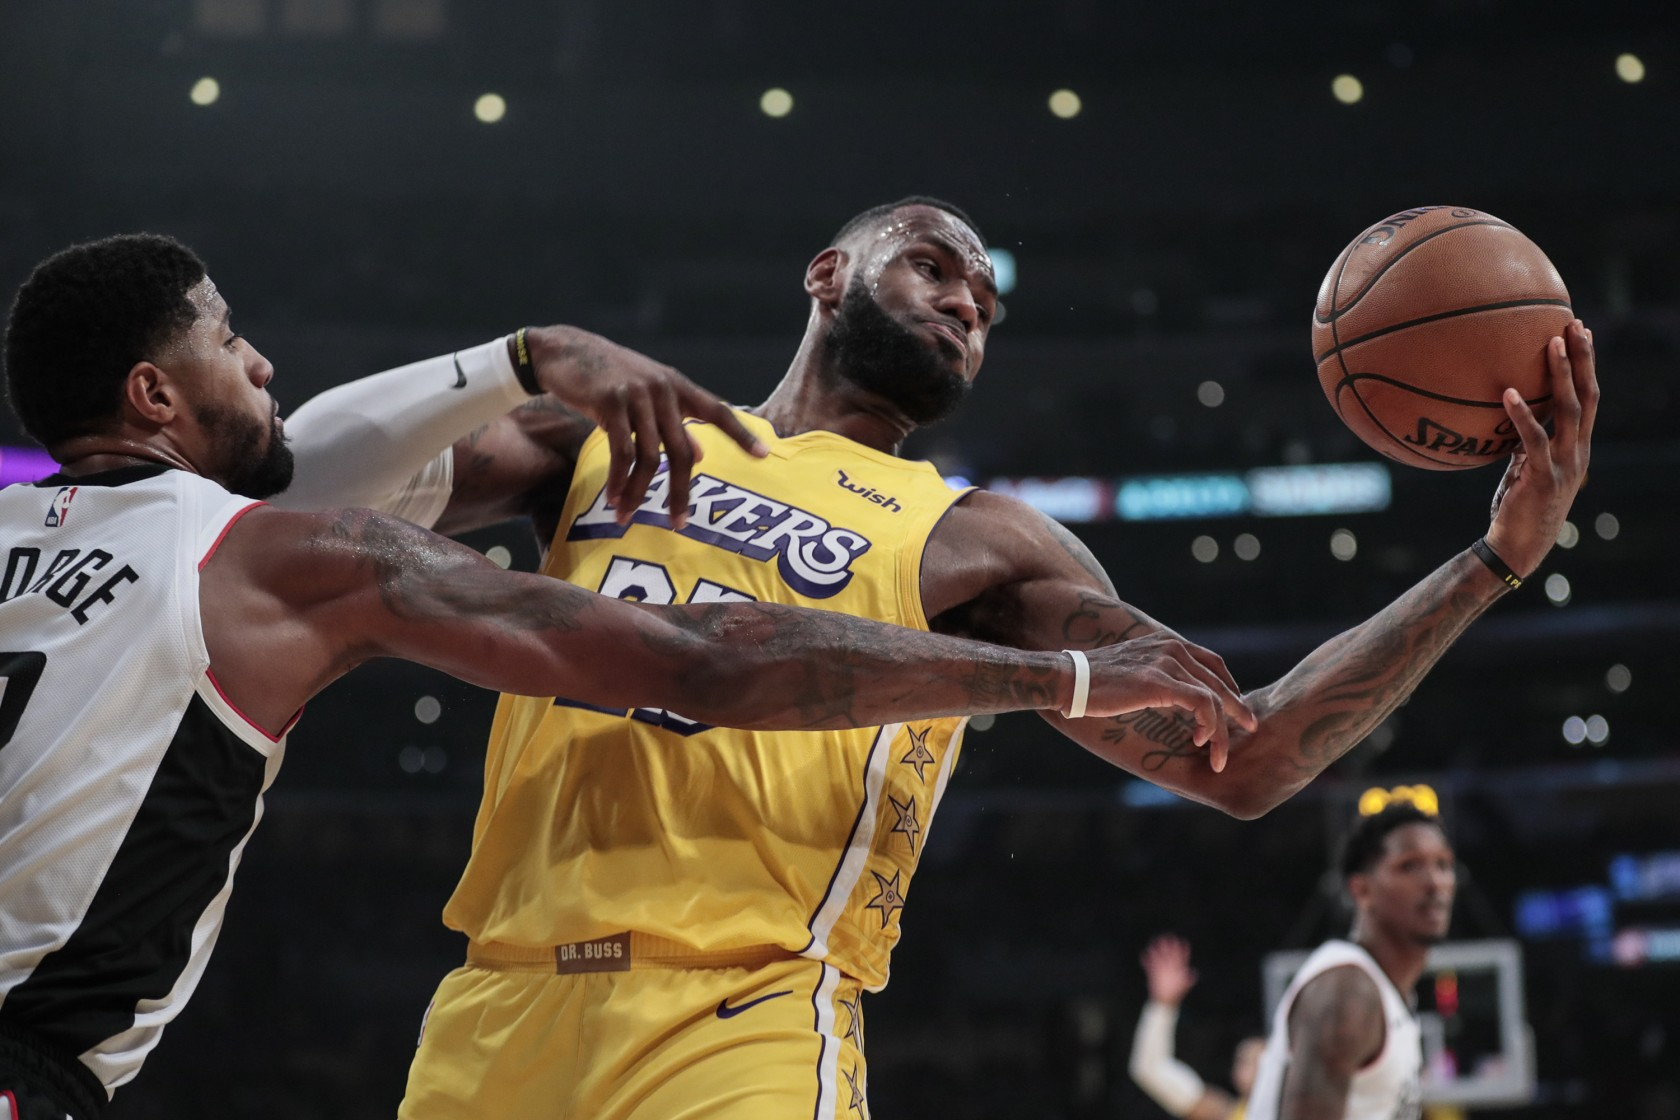 Lakers forward LeBron James tries to control a rebound against Clippers forward Paul George. (Credit: Robert Gauthier/ Los Angeles Times)